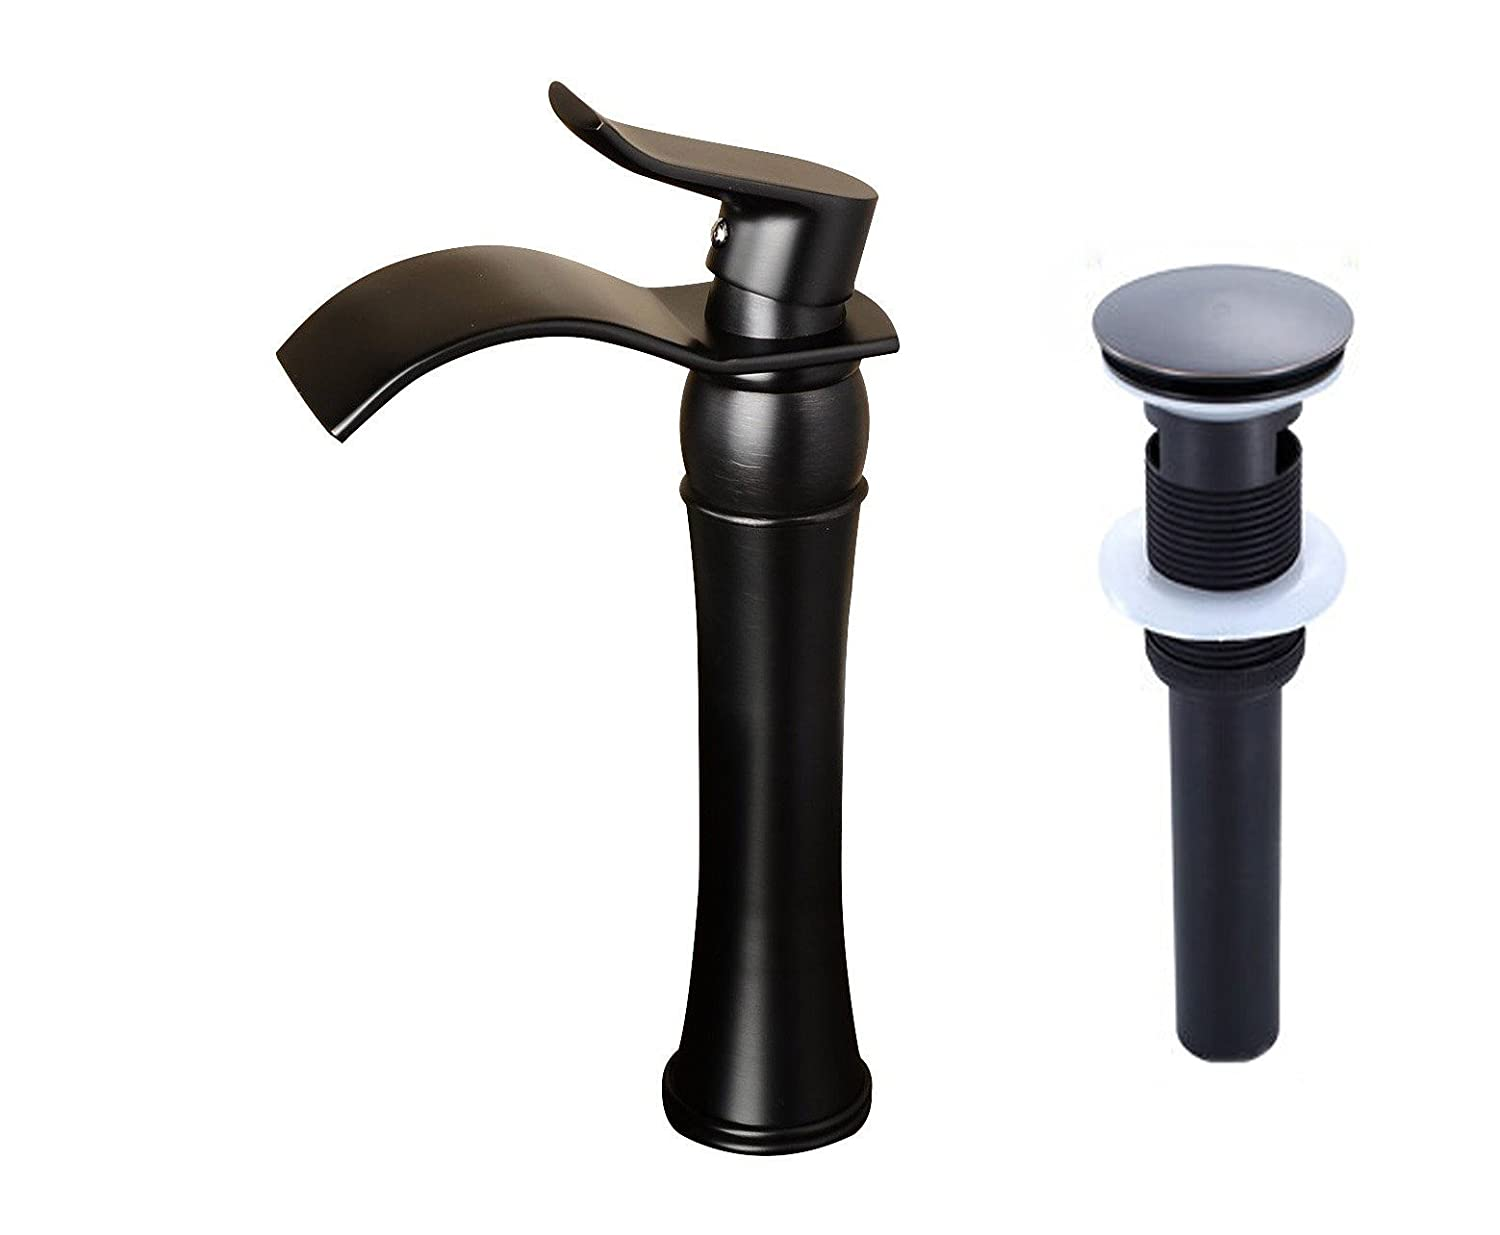 Waterfall Faucet For Vessel Sink Bathroom Kitchen Sink Vessel Faucet Oil Rubbed Bronze Waterfall